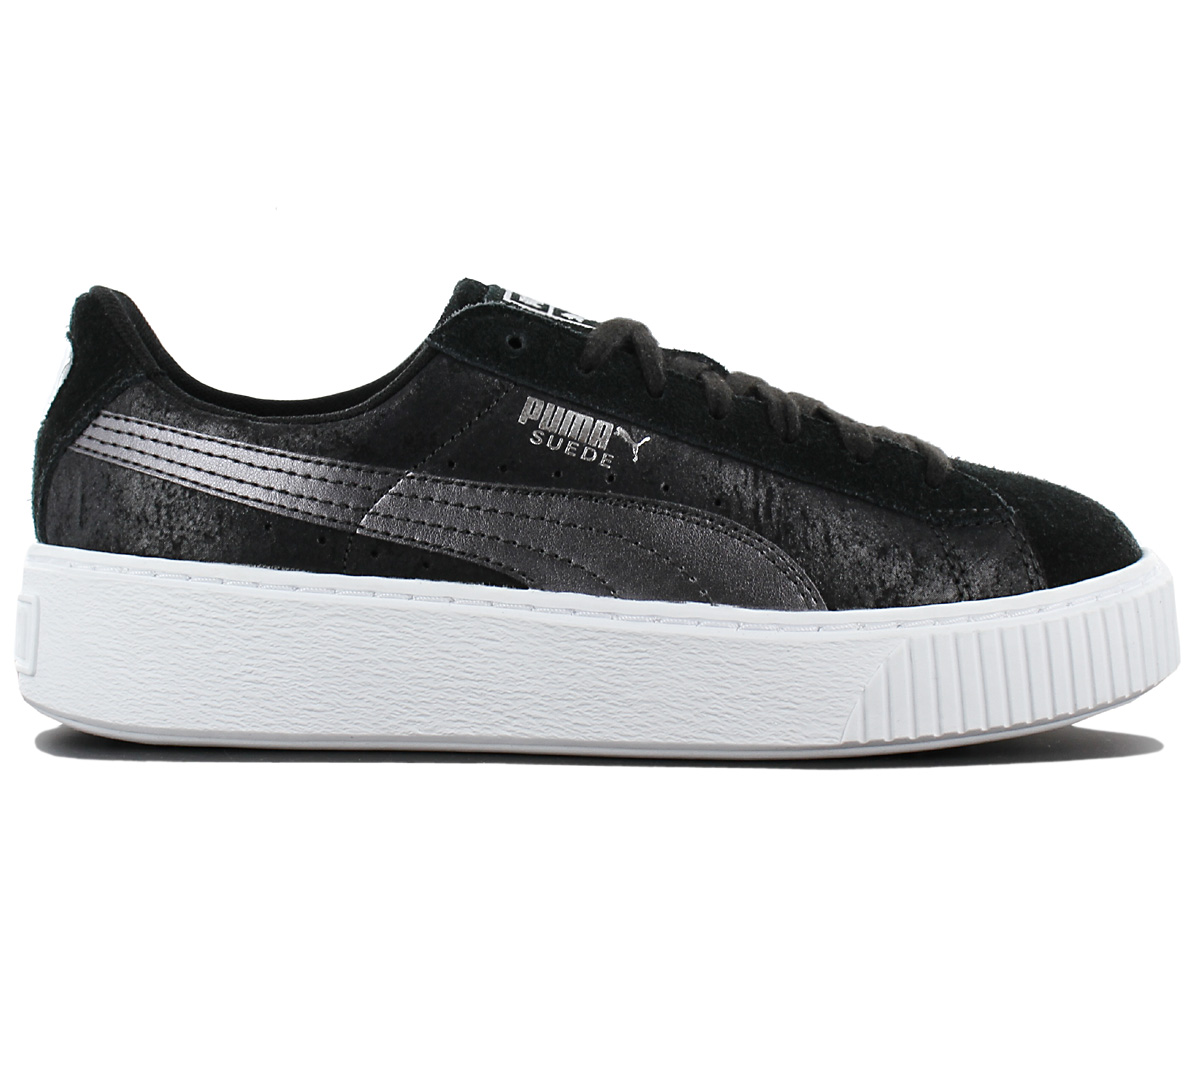 Puma Suede Platform Safari Wns Black White Women Casual Shoes Sneakers 364594 03